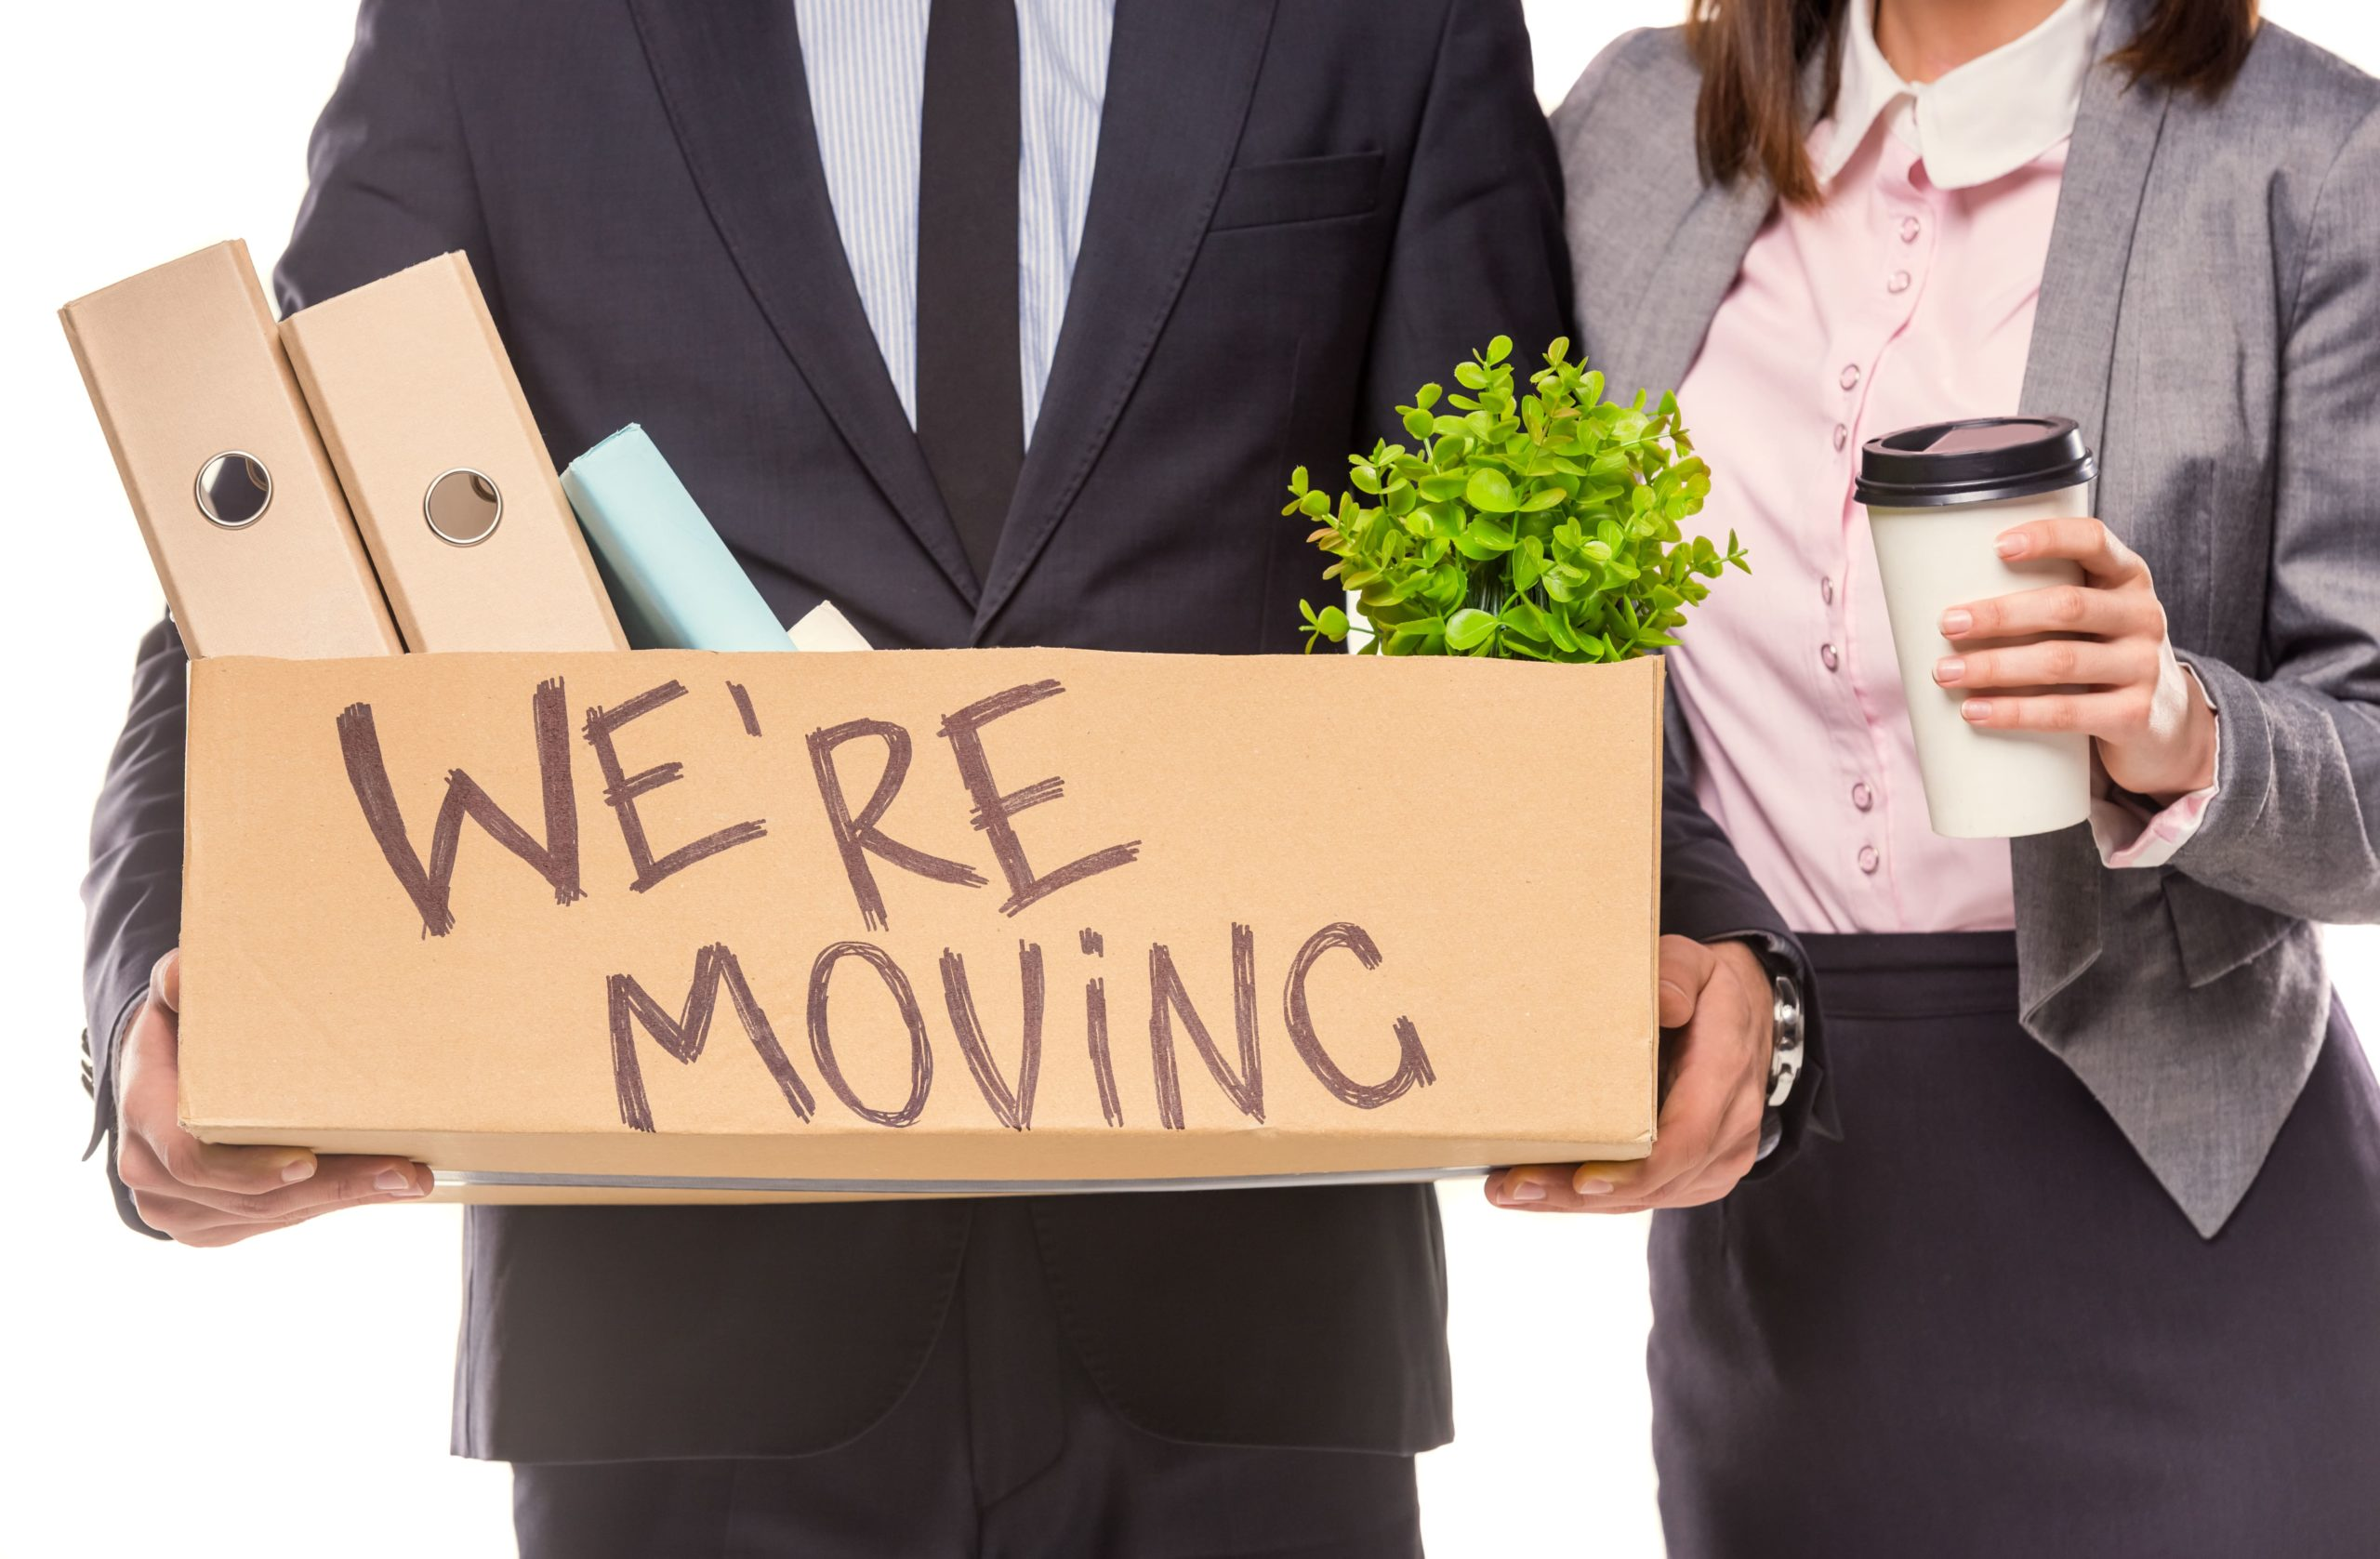 We're Moving Box - Moving Companies - Get Your Quote